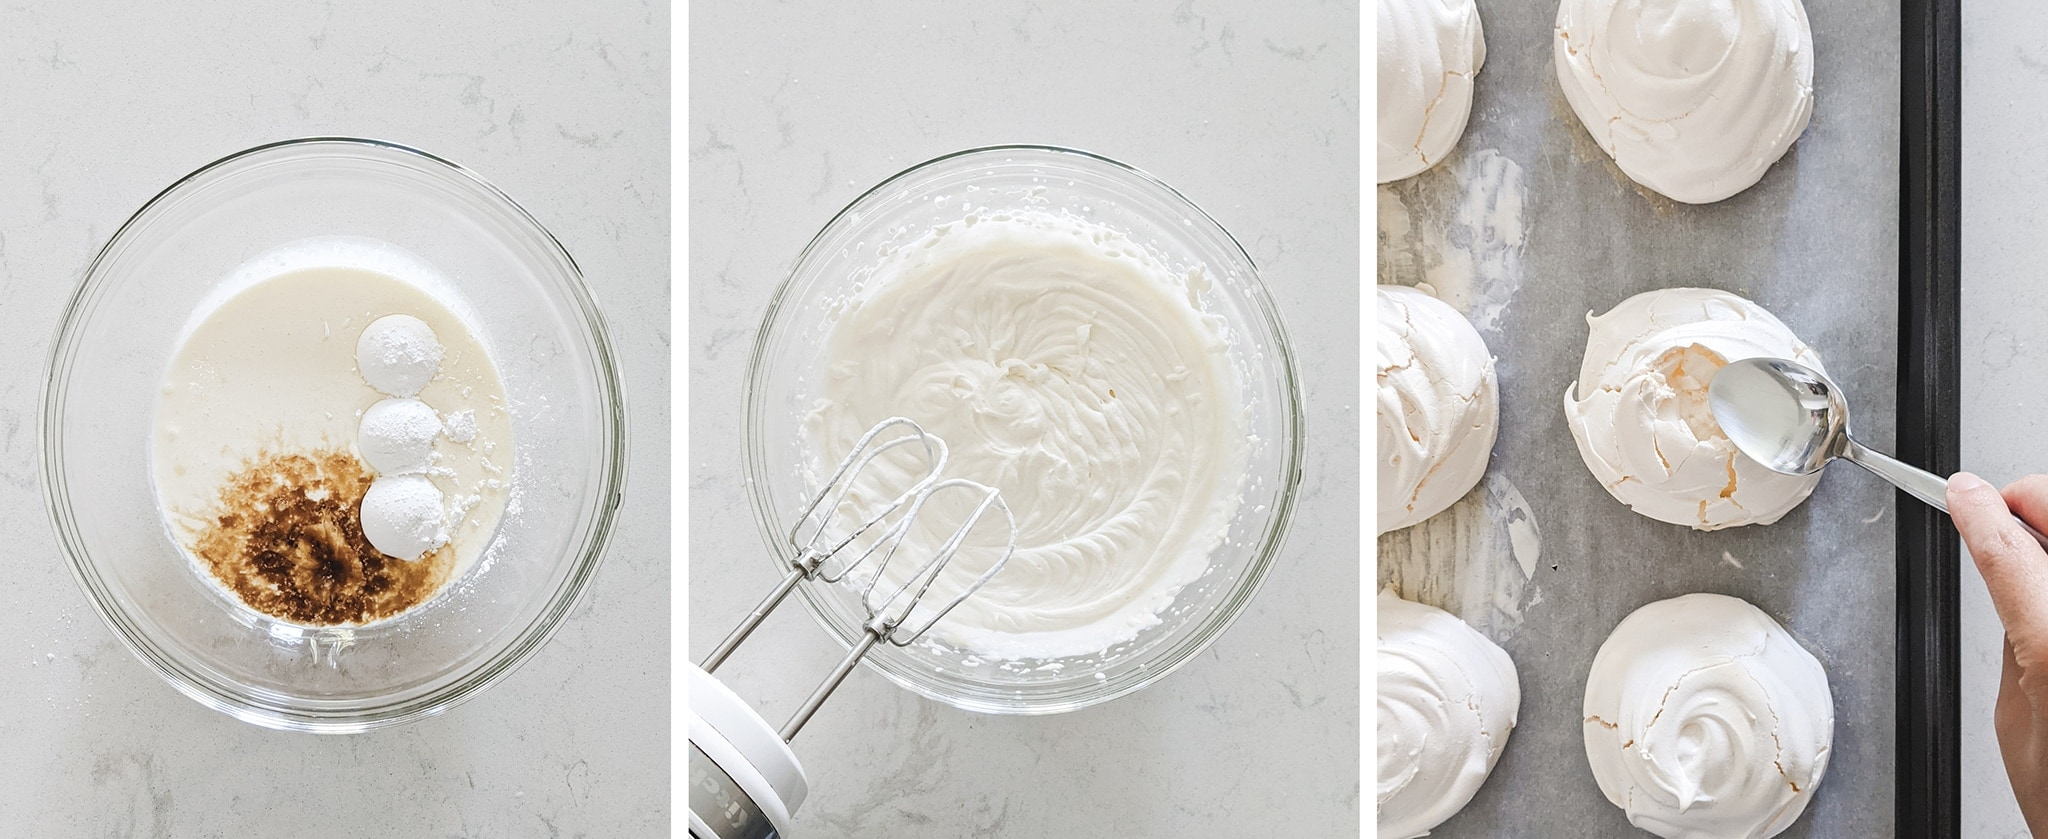 Making whipped cream to fill pavlovas